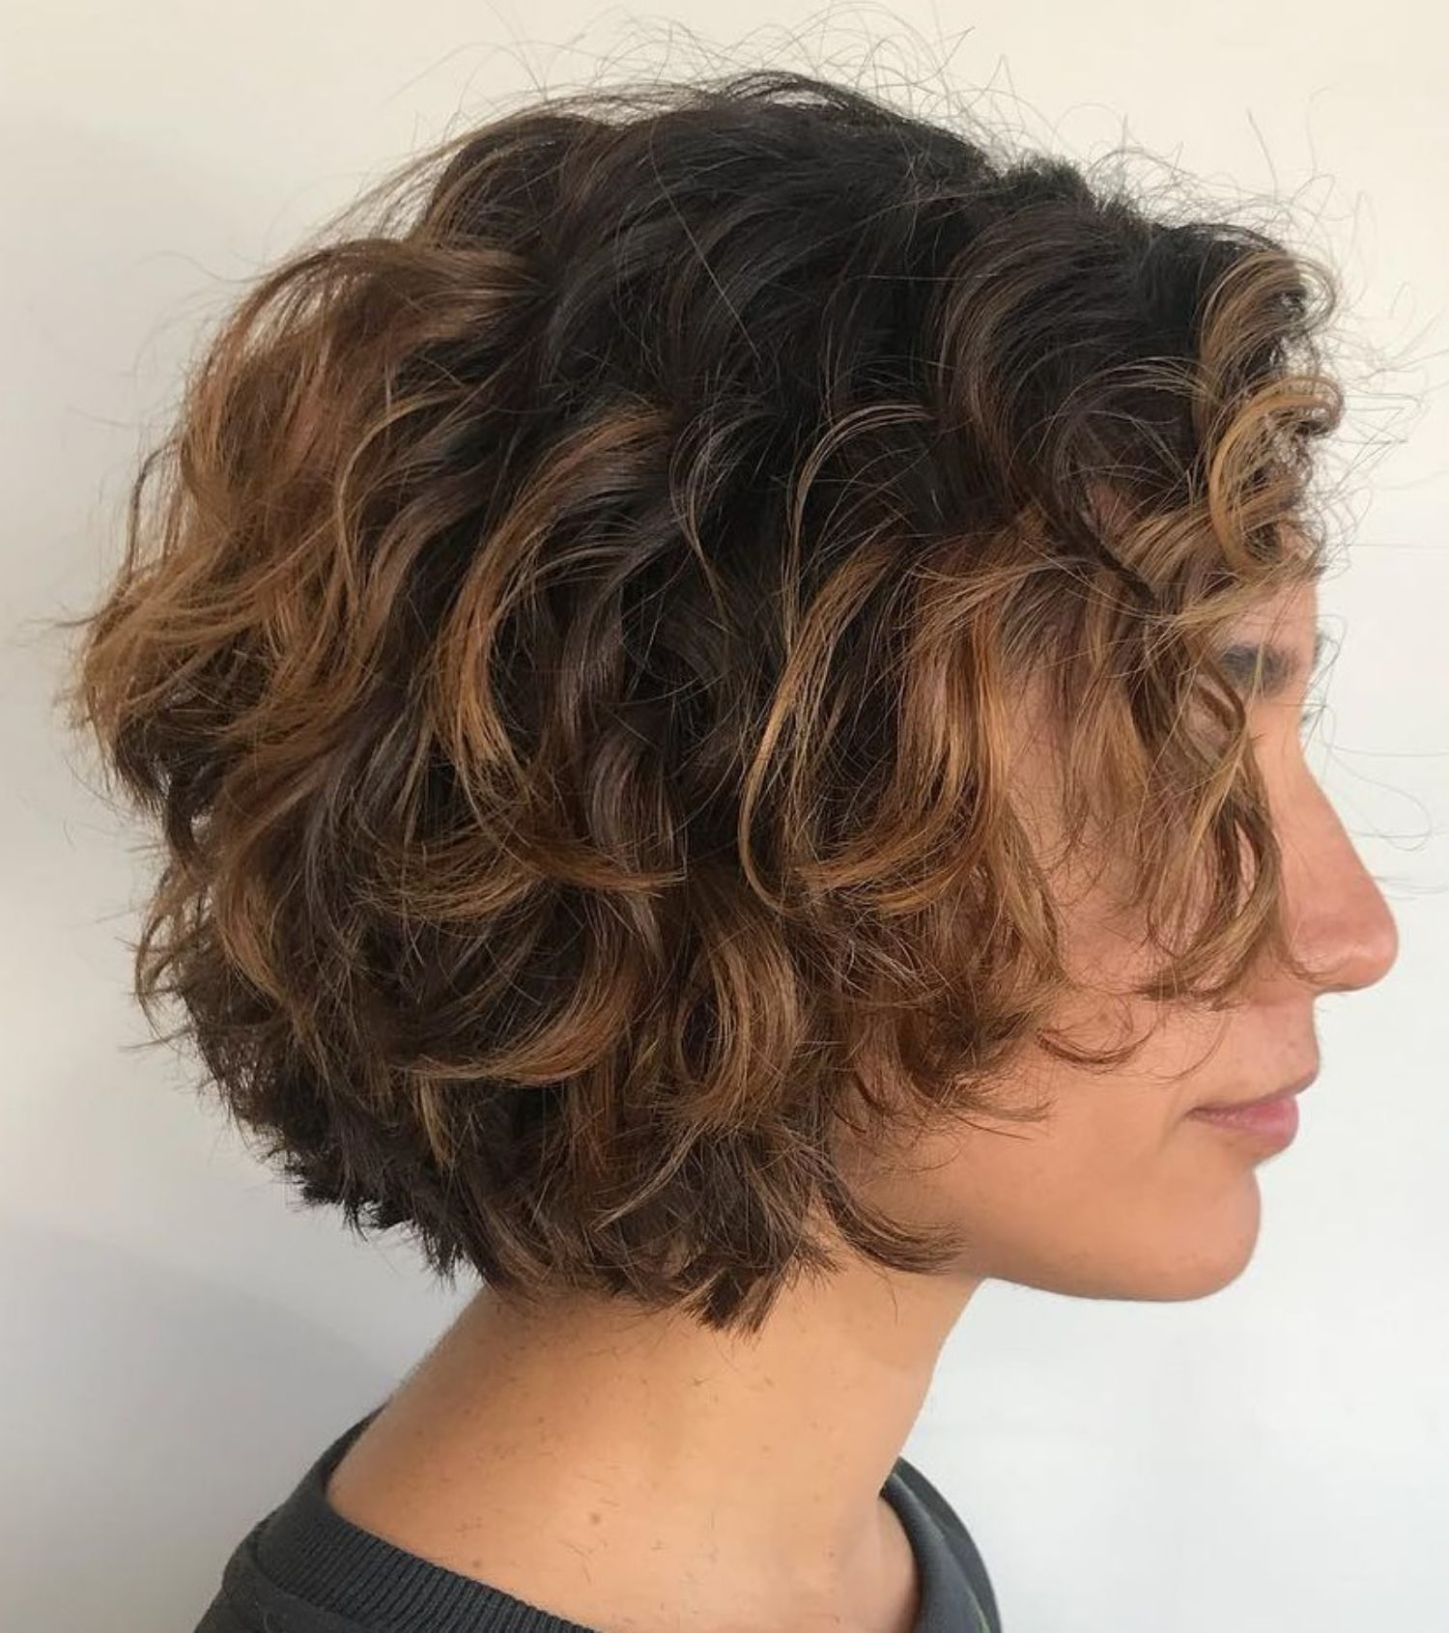 60 Most Delightful Short Wavy Hairstyles Short Wavy Hair Short Layered Curly Hair Hair Styles